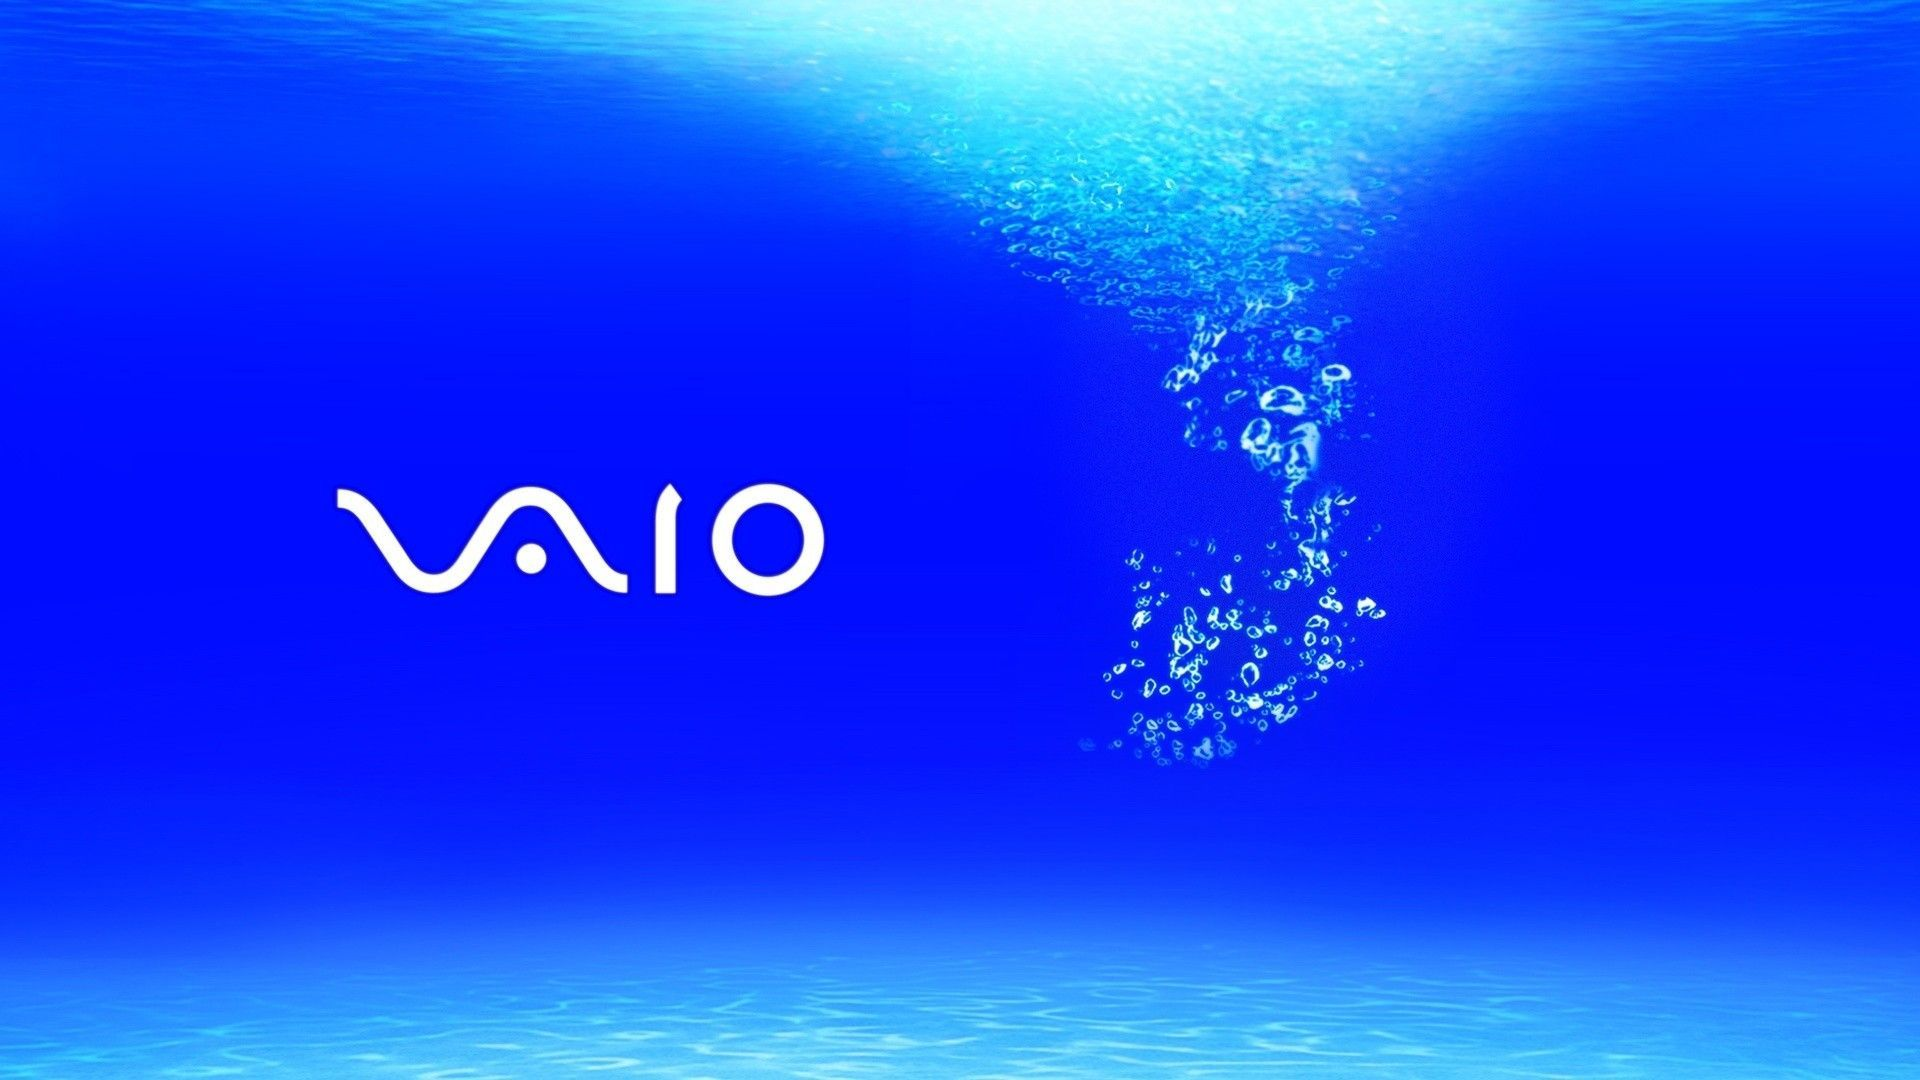 laptops vaio wallpapers 2015 wallpaper cave